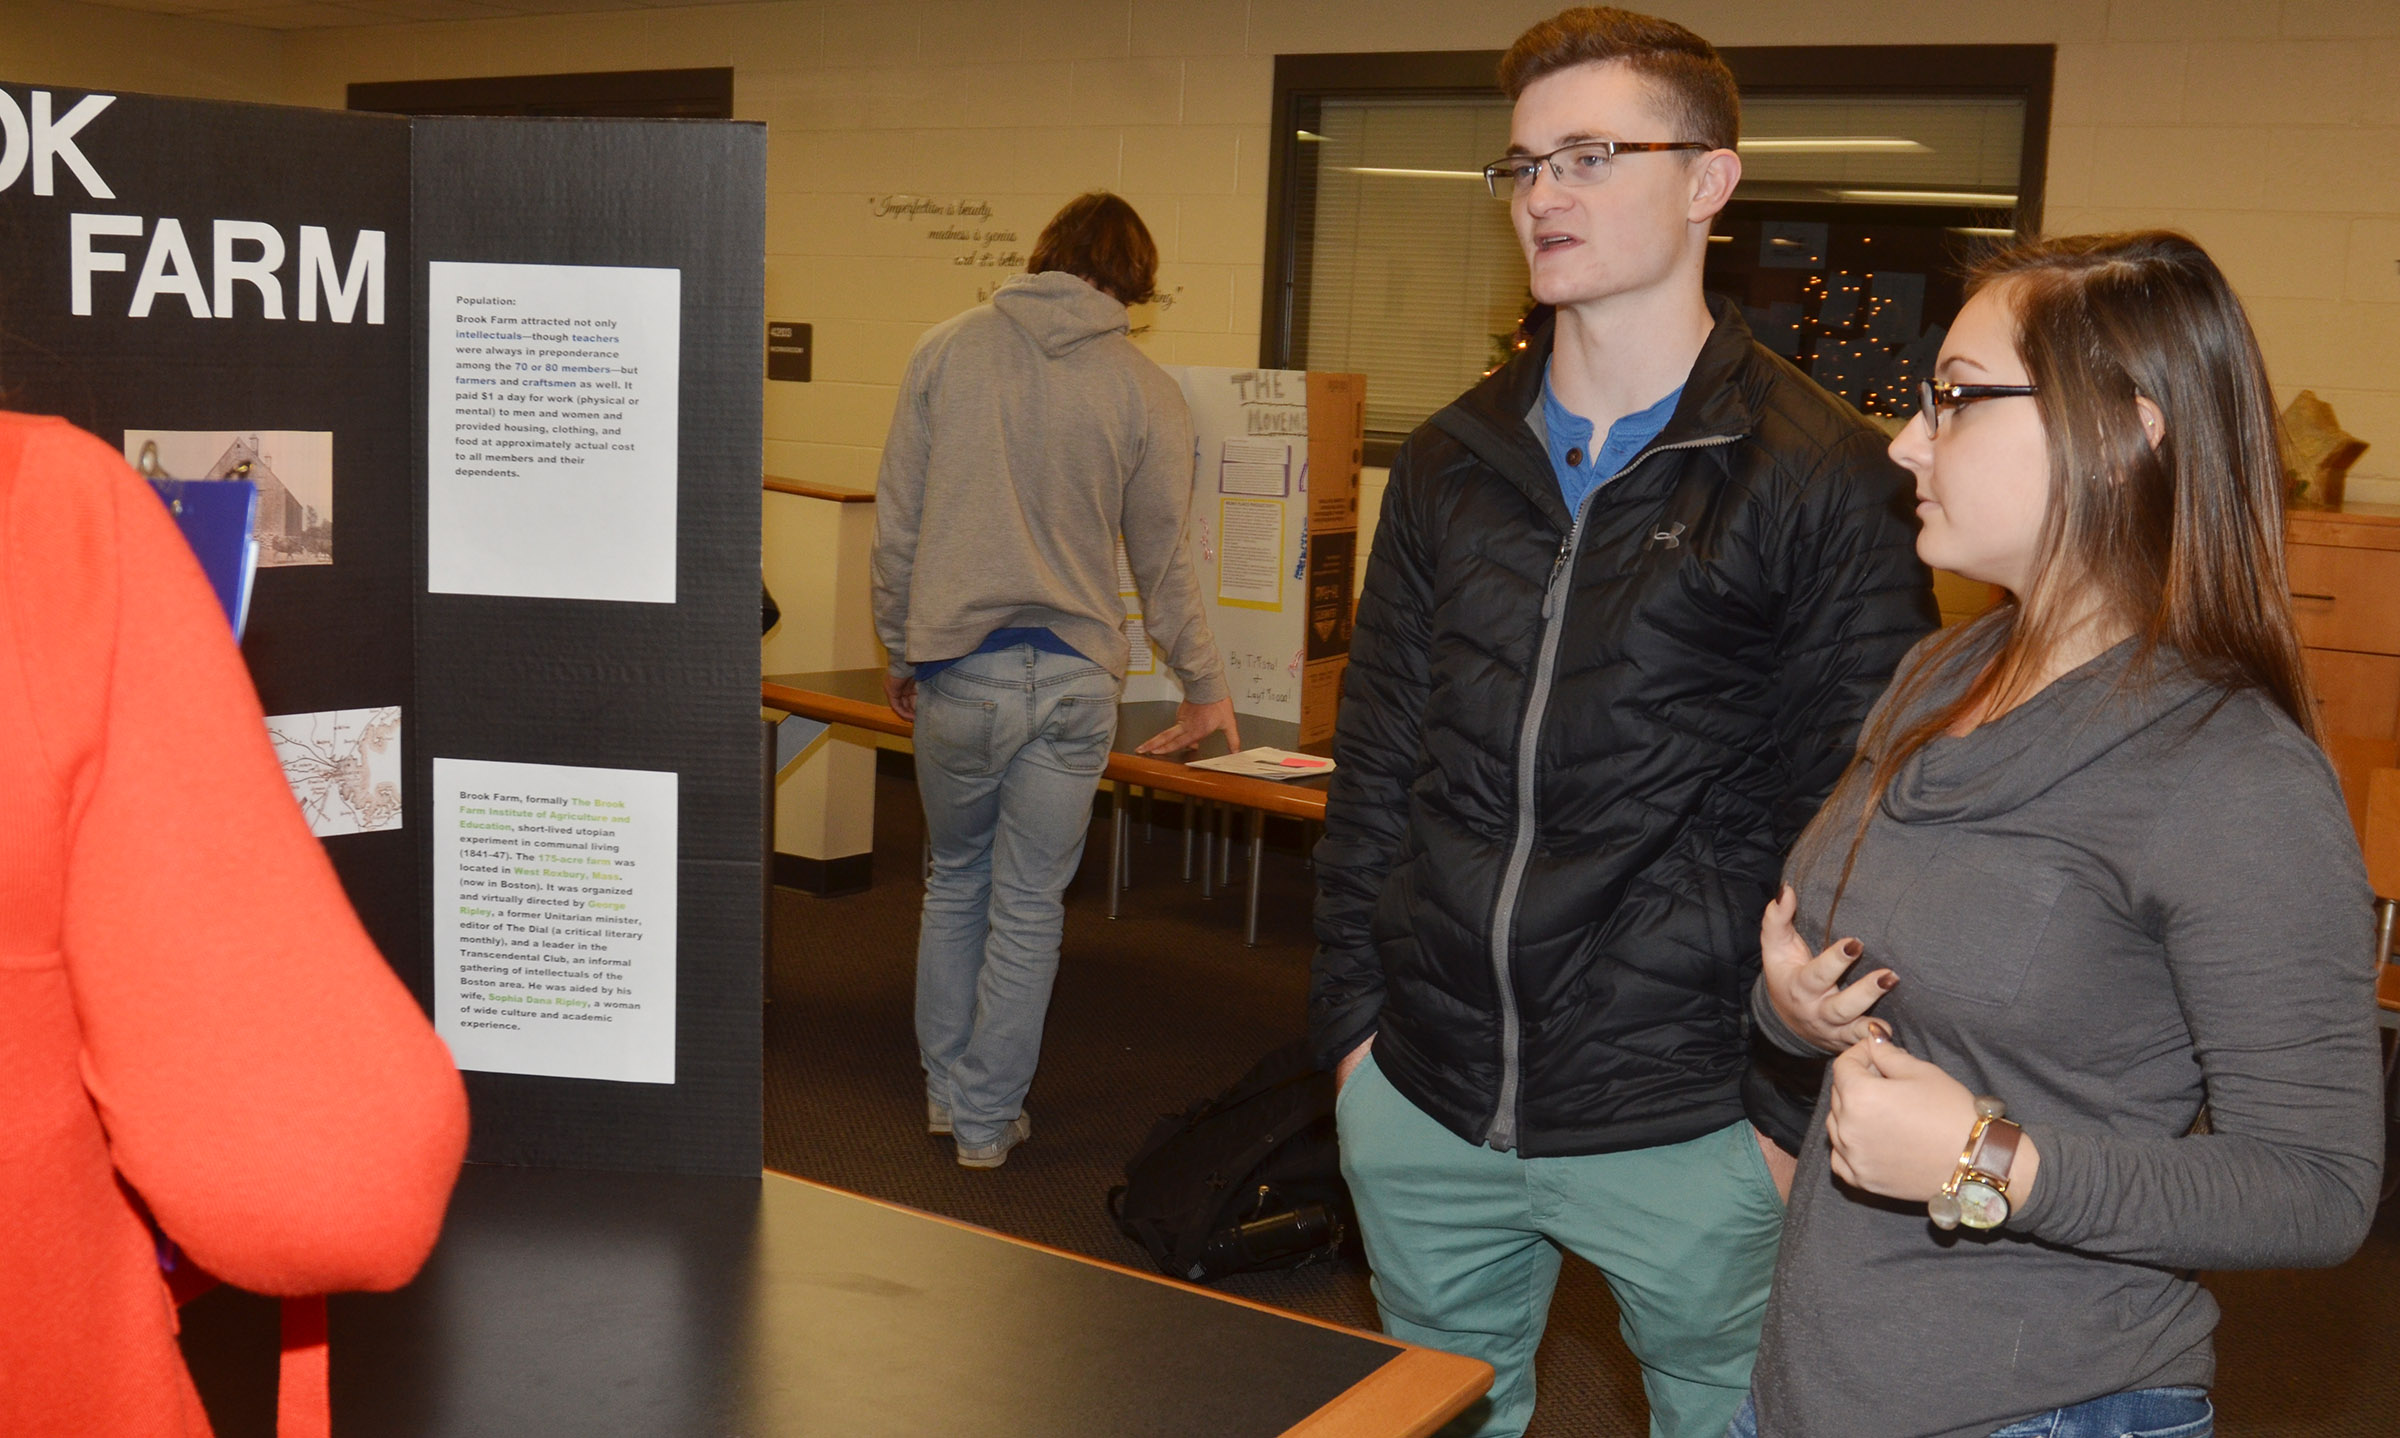 CHS senior Bryce Richardson, at left, and junior Reagan Knight present about the Brook Farm reform movement.